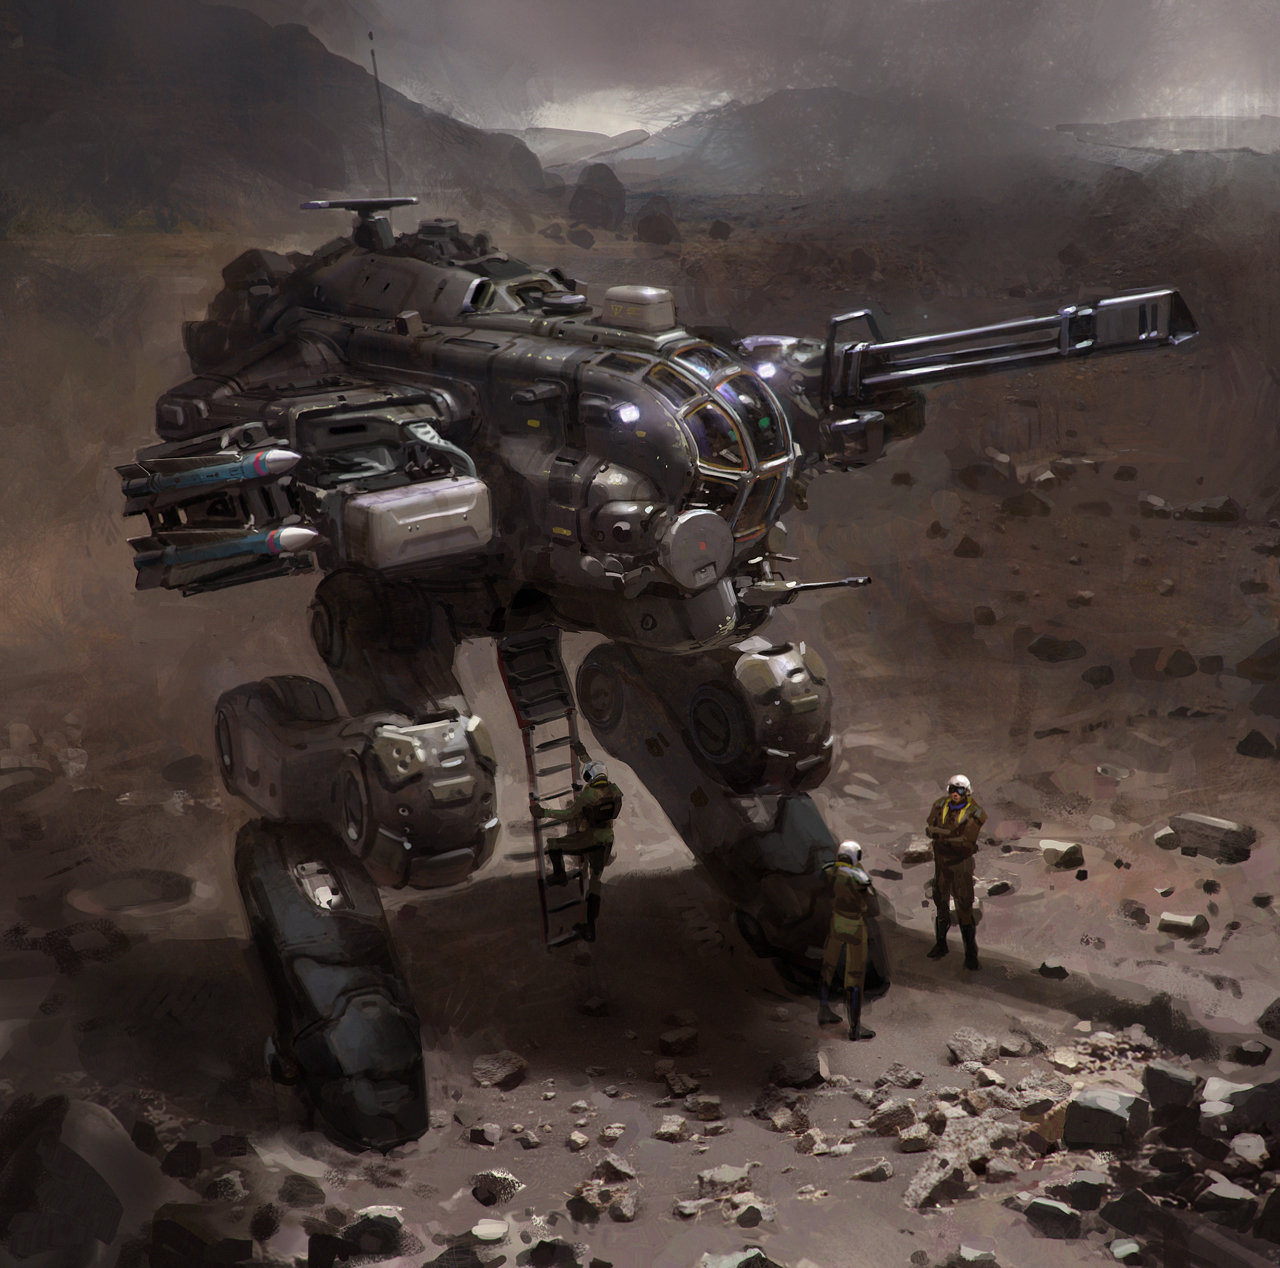 Japanese Sci Fi Art Iso50 Blog: 1000+ Images About Robots/sci-fi On Pinterest